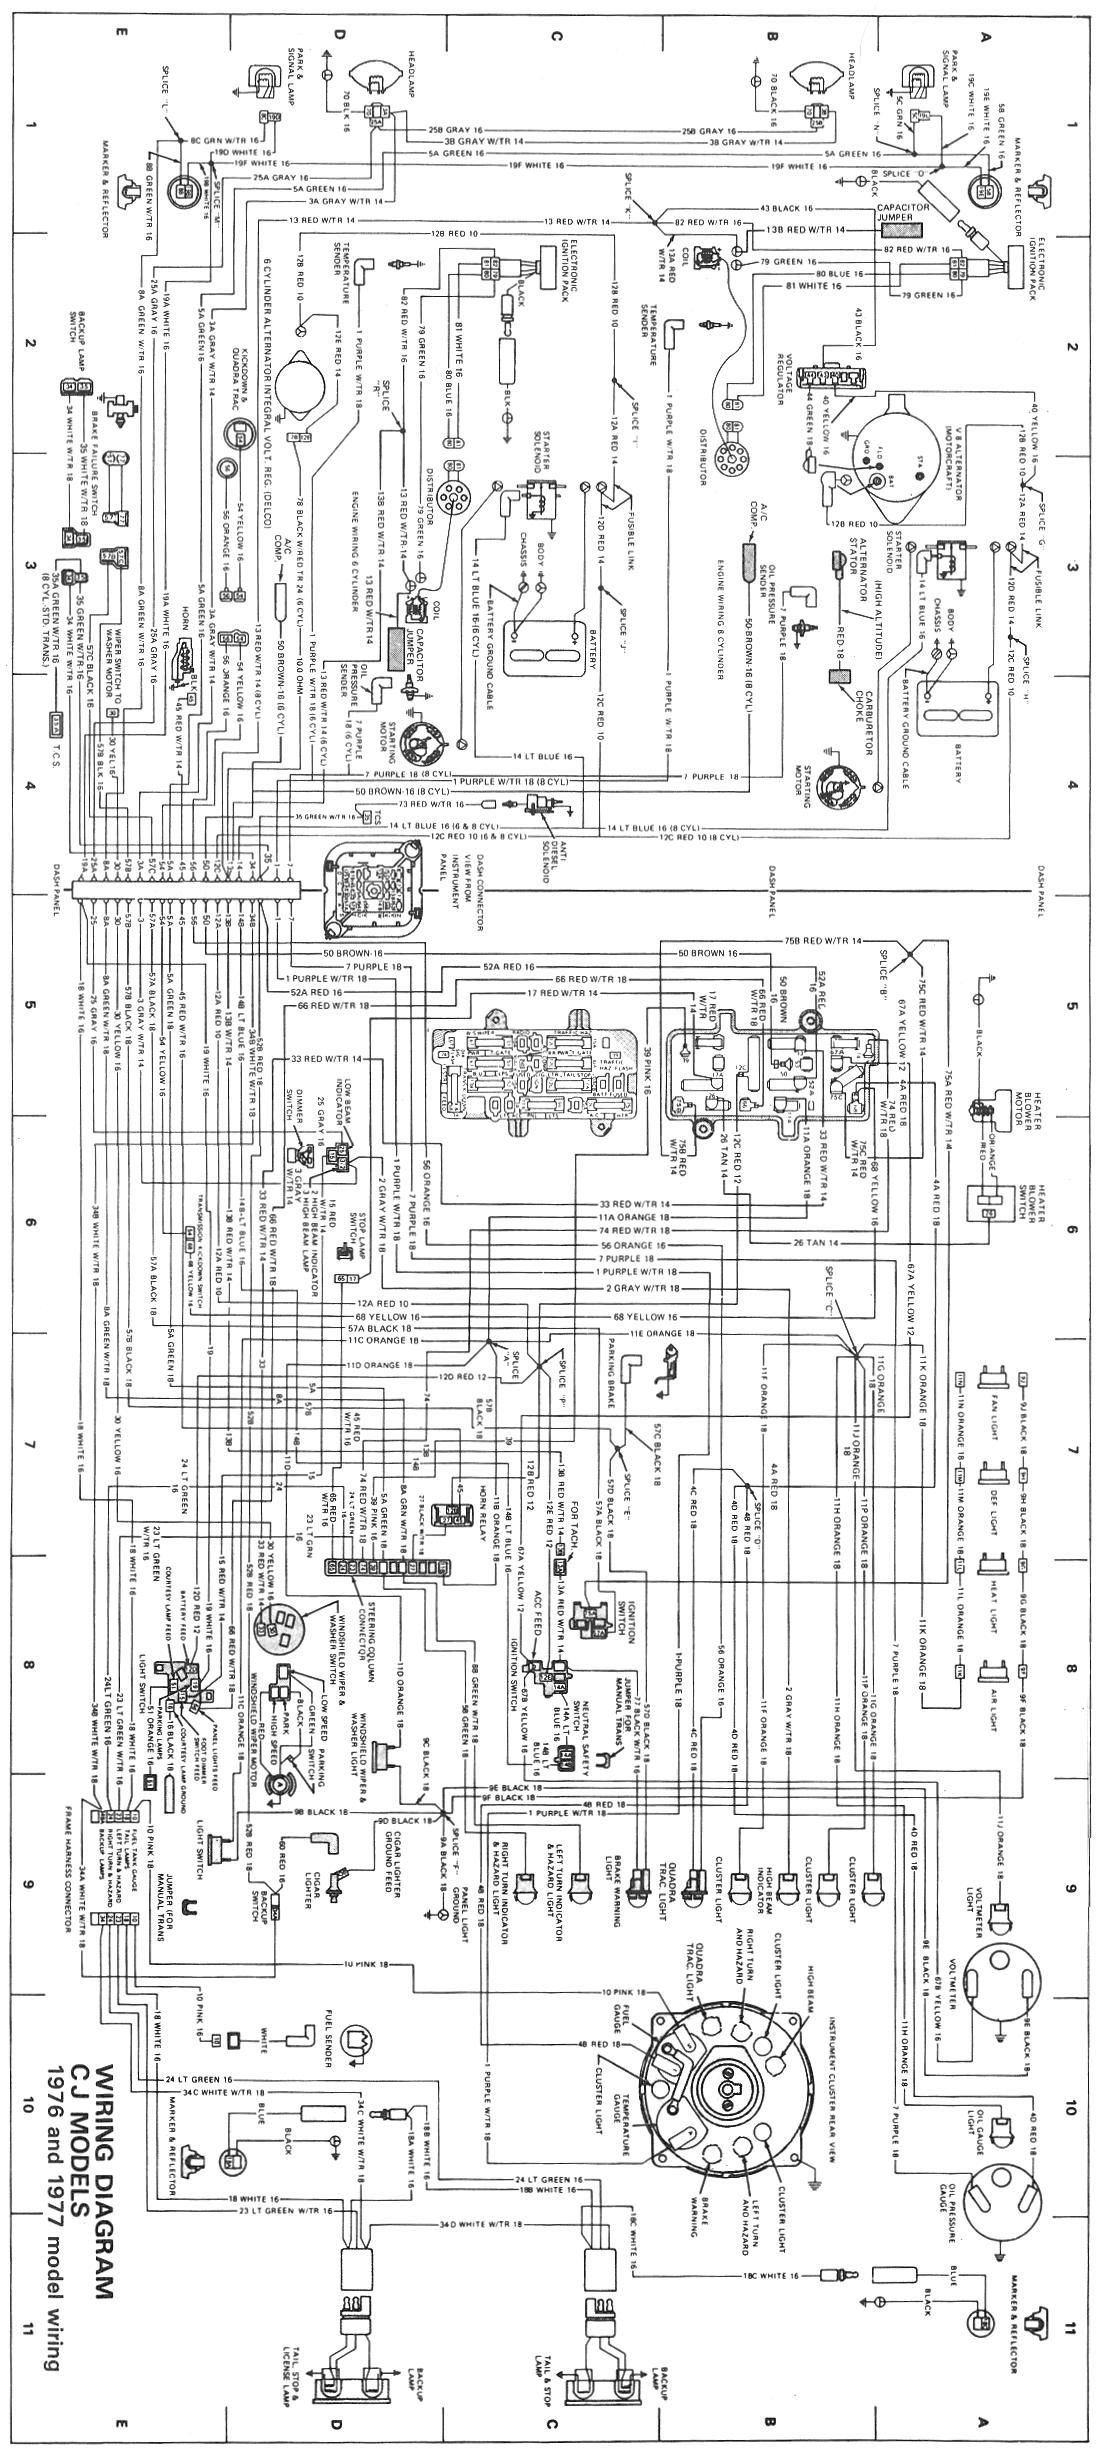 77 Cj5 Wiring Diagram | Wiring Diagram Jeep Cj Wiring Schematic on